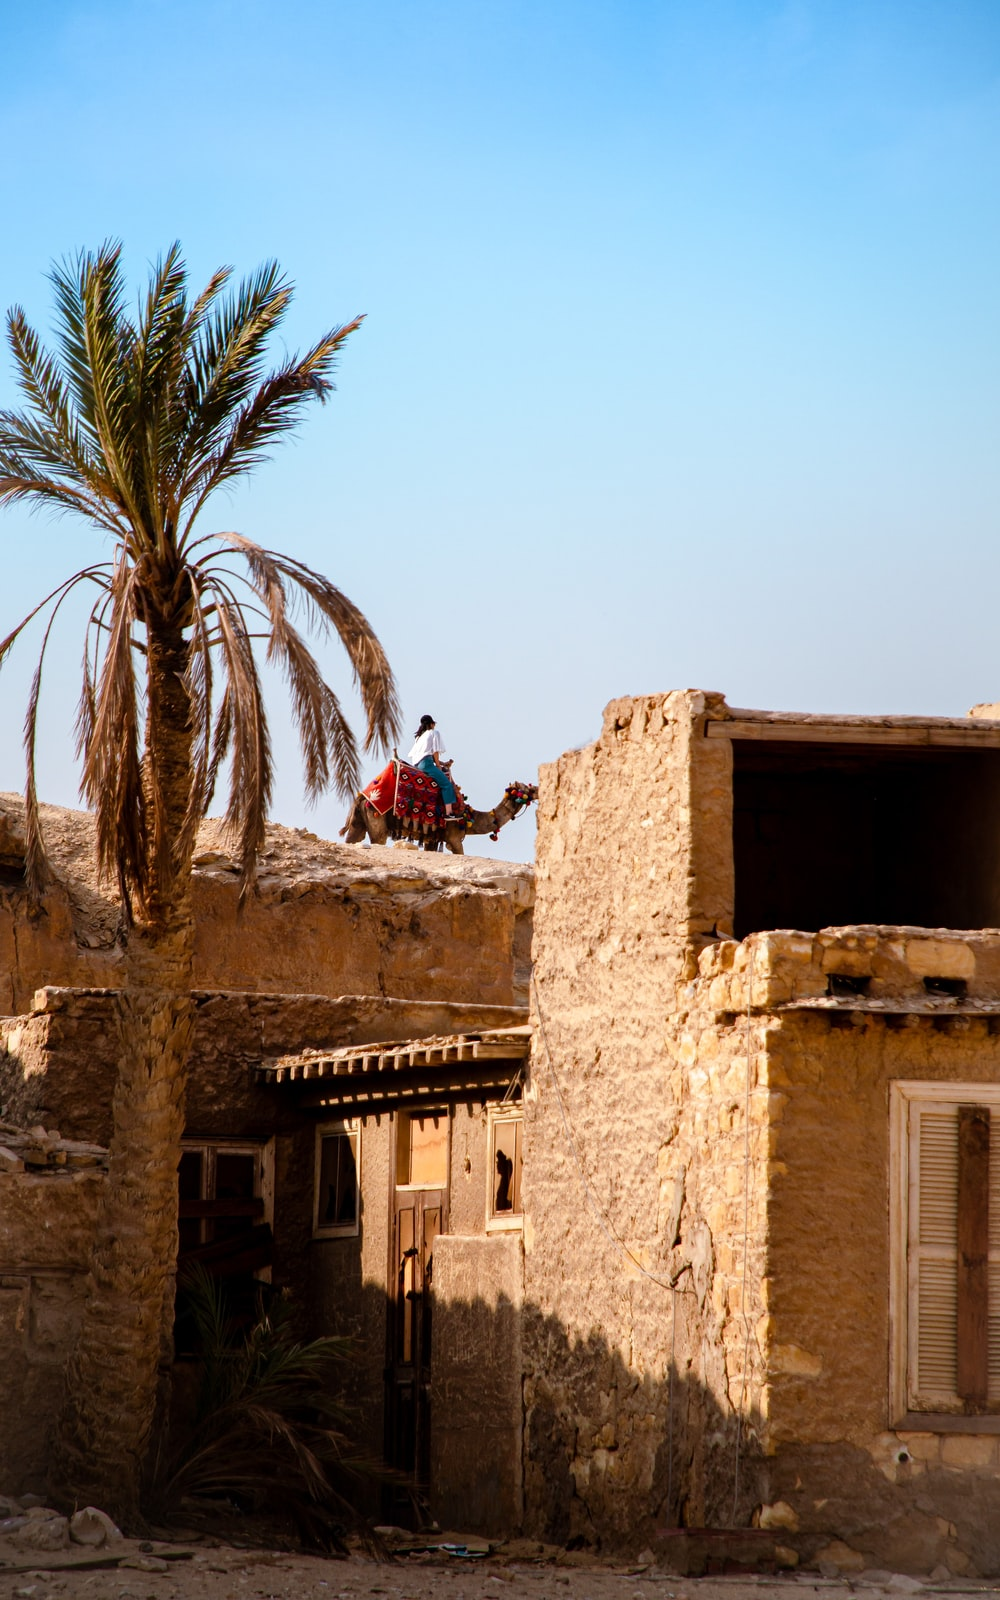 person riding camel near building and tree